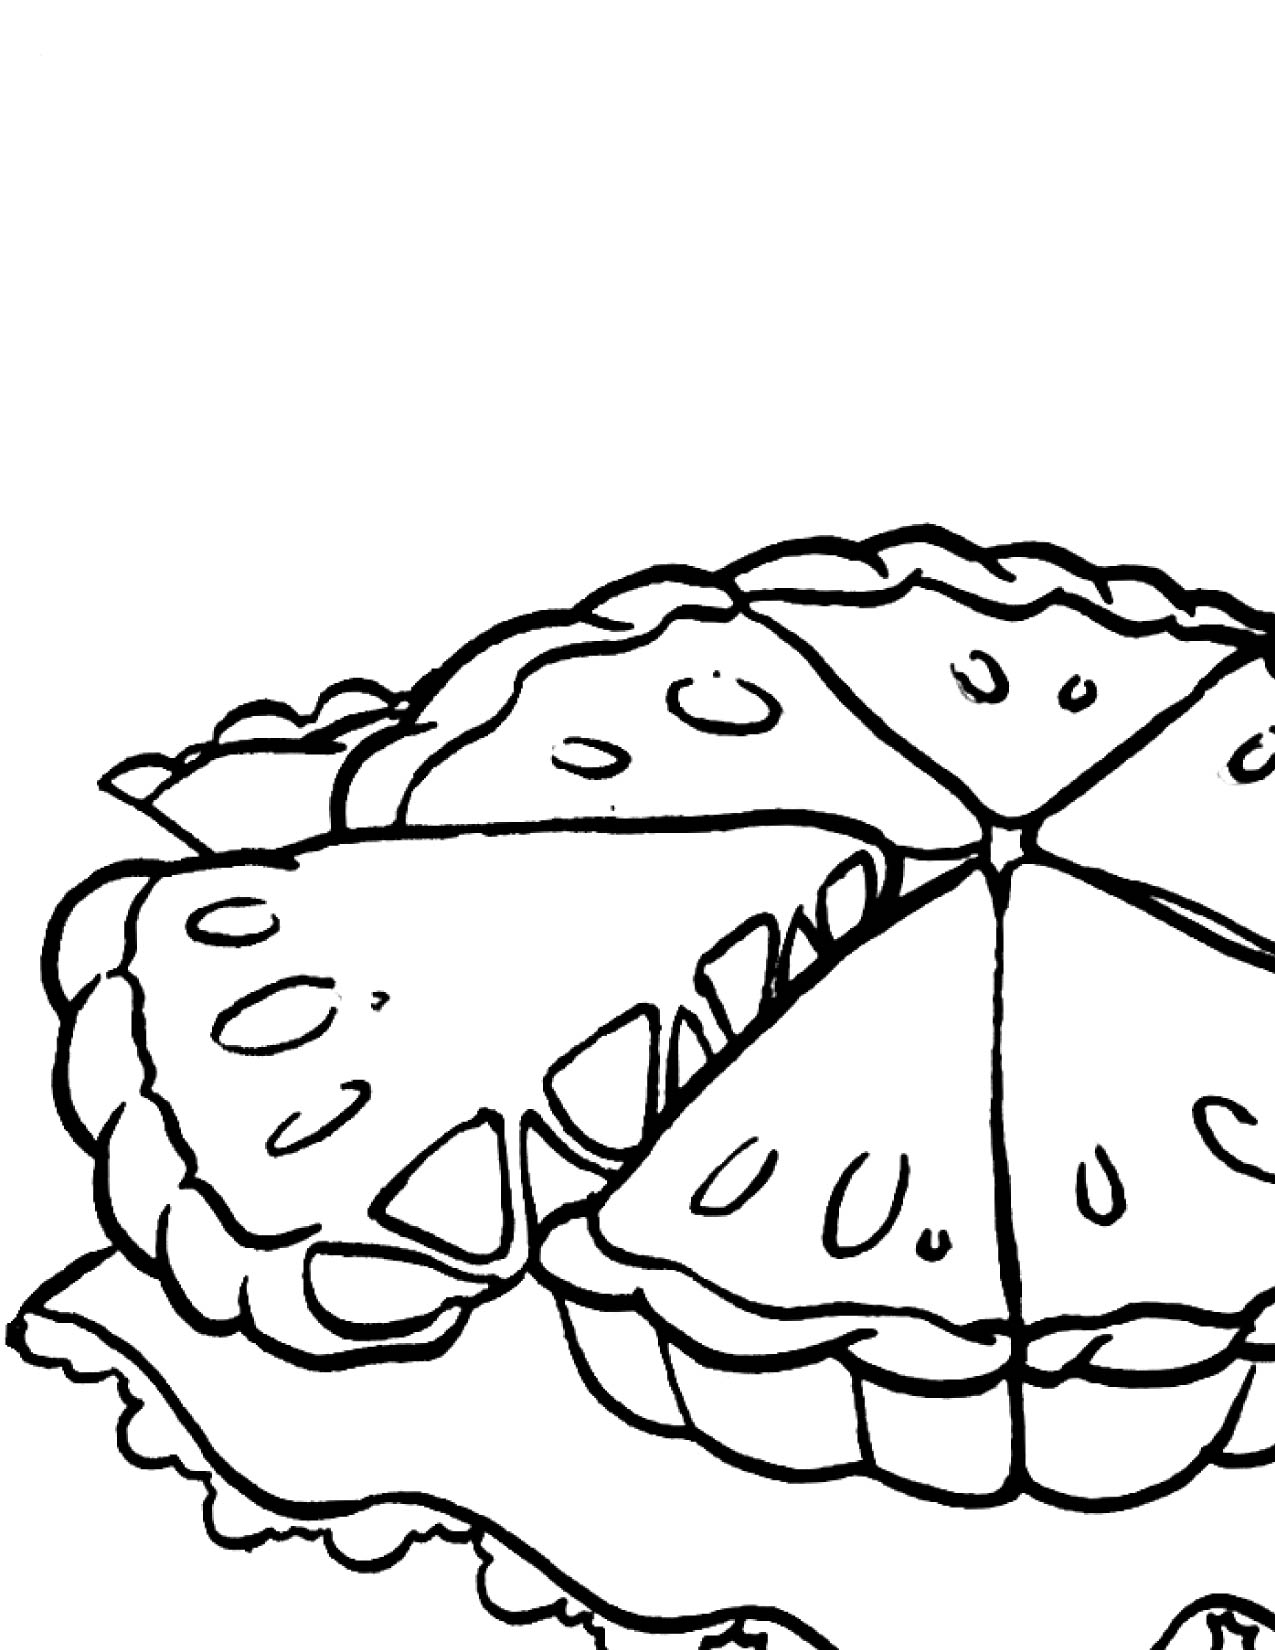 Apple Pie Black And White Clipart